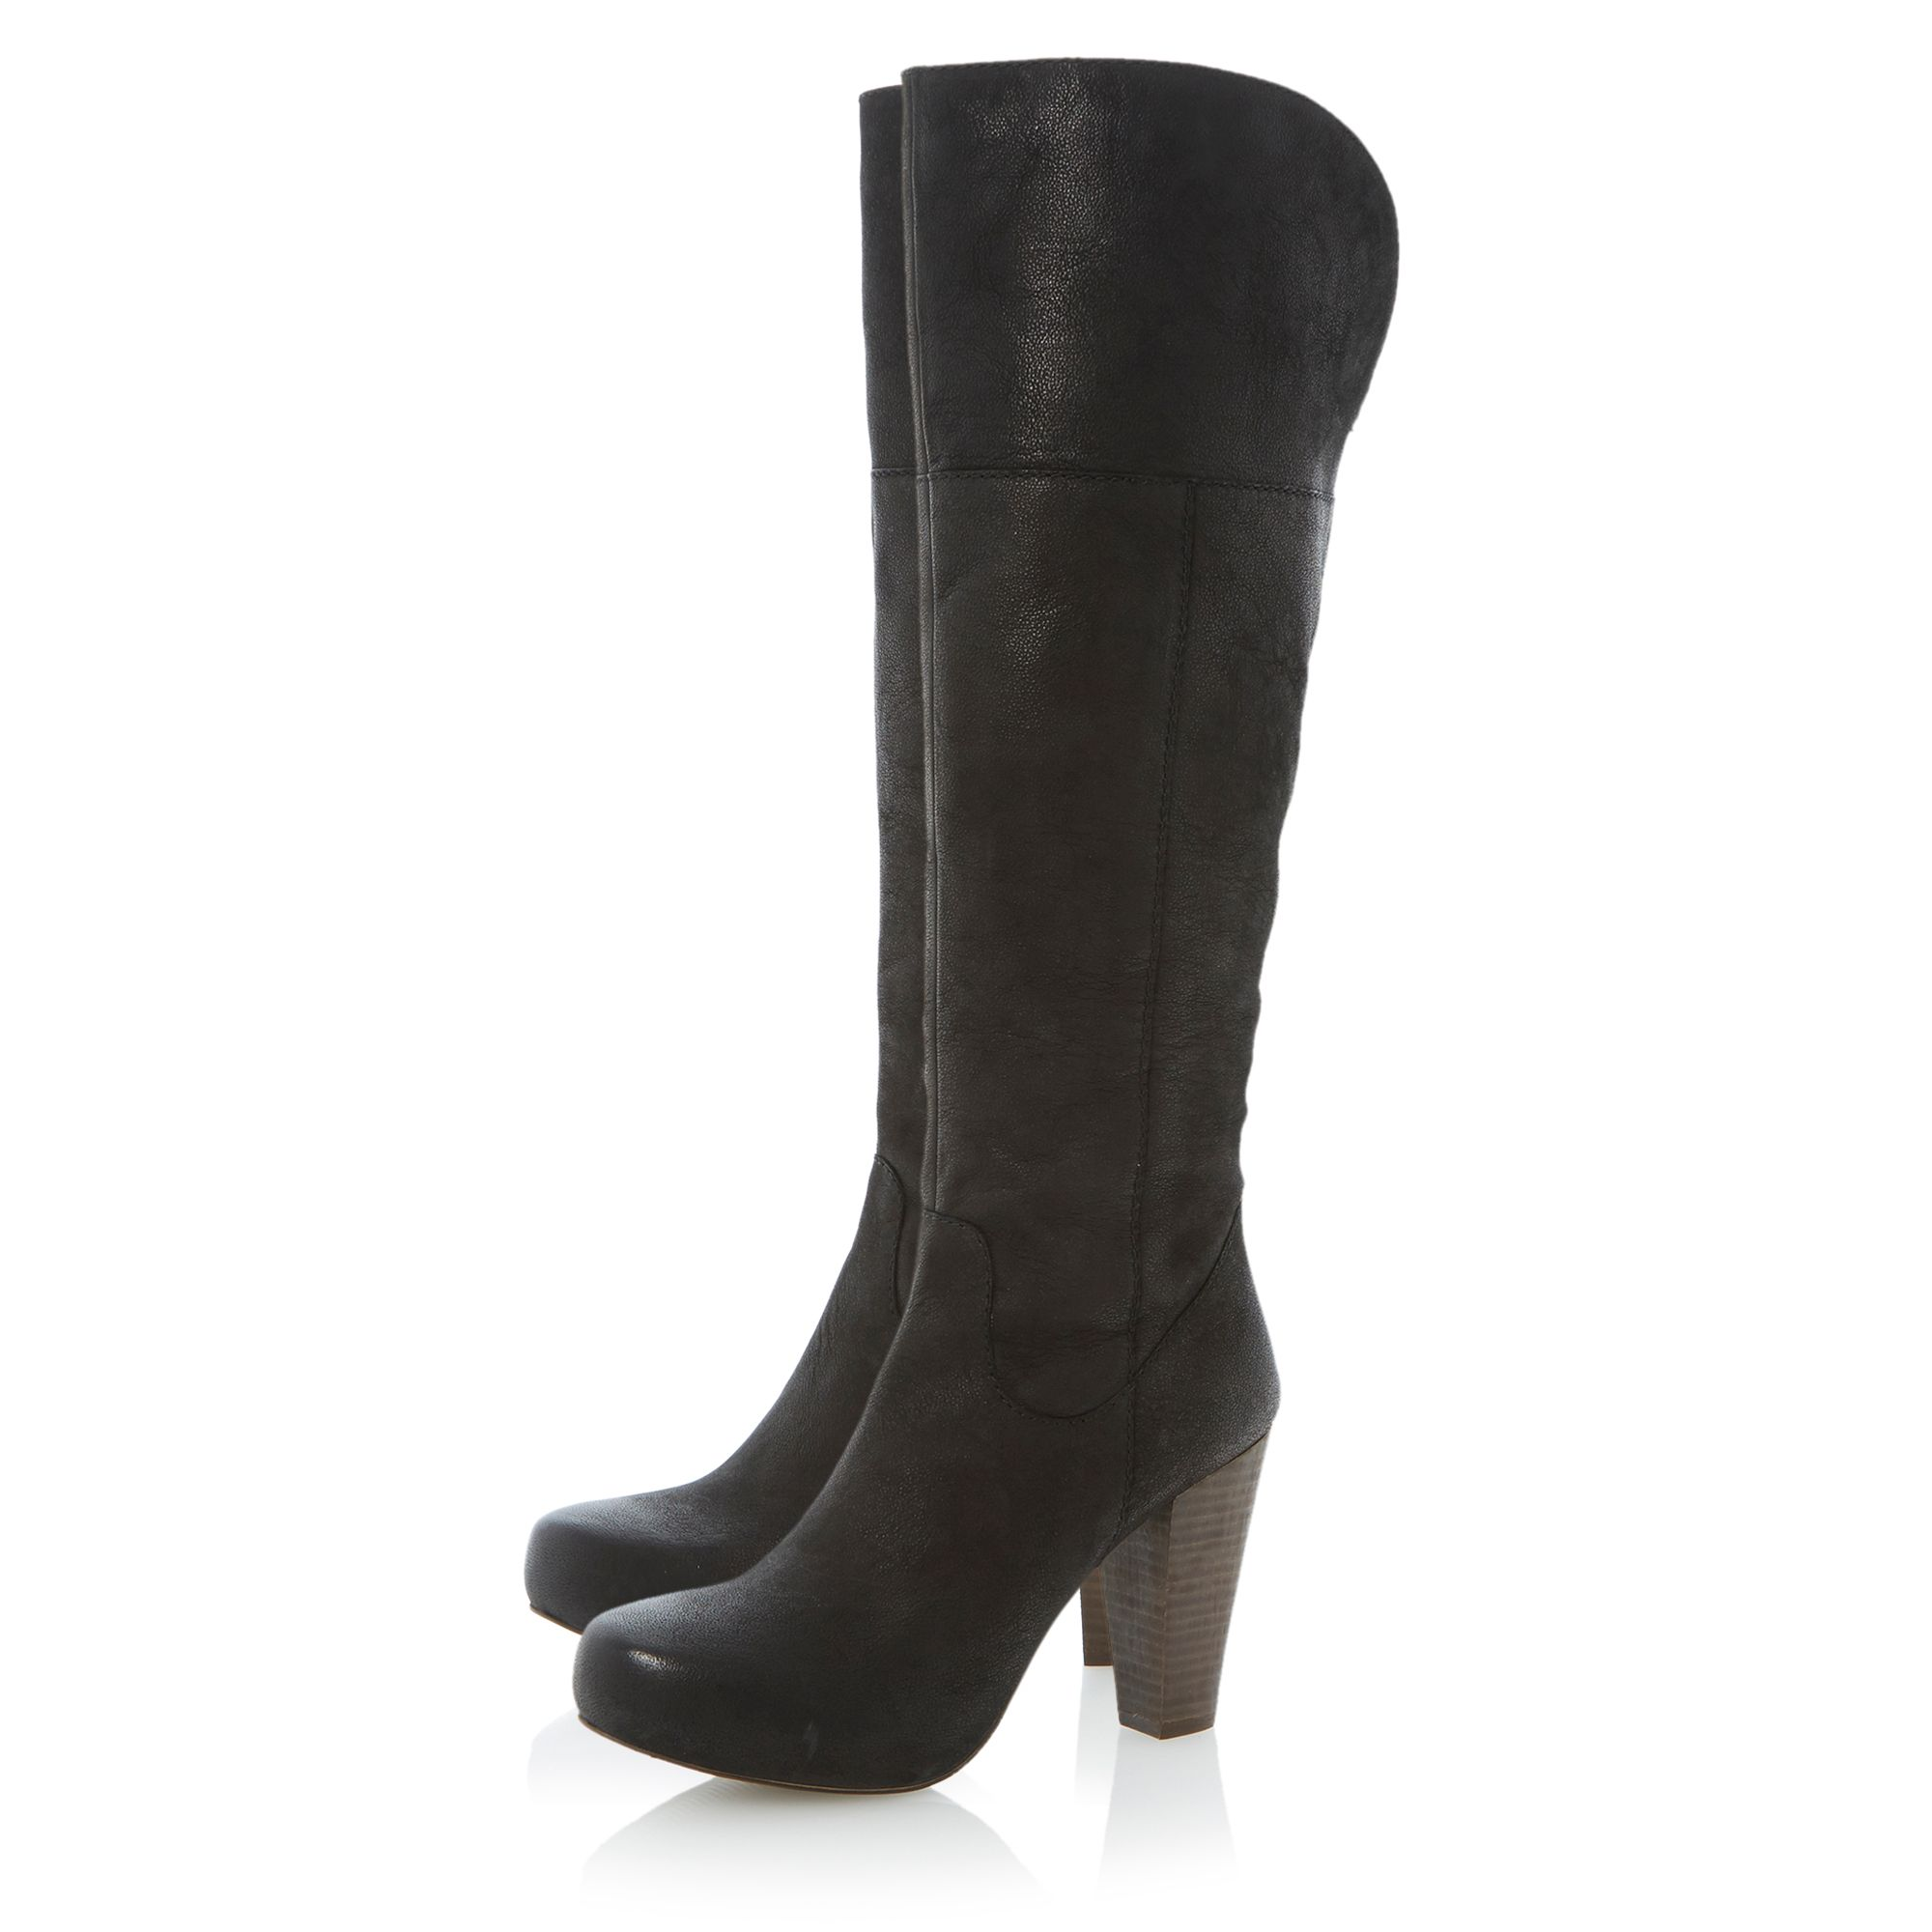 Rocket over the knee leather boots